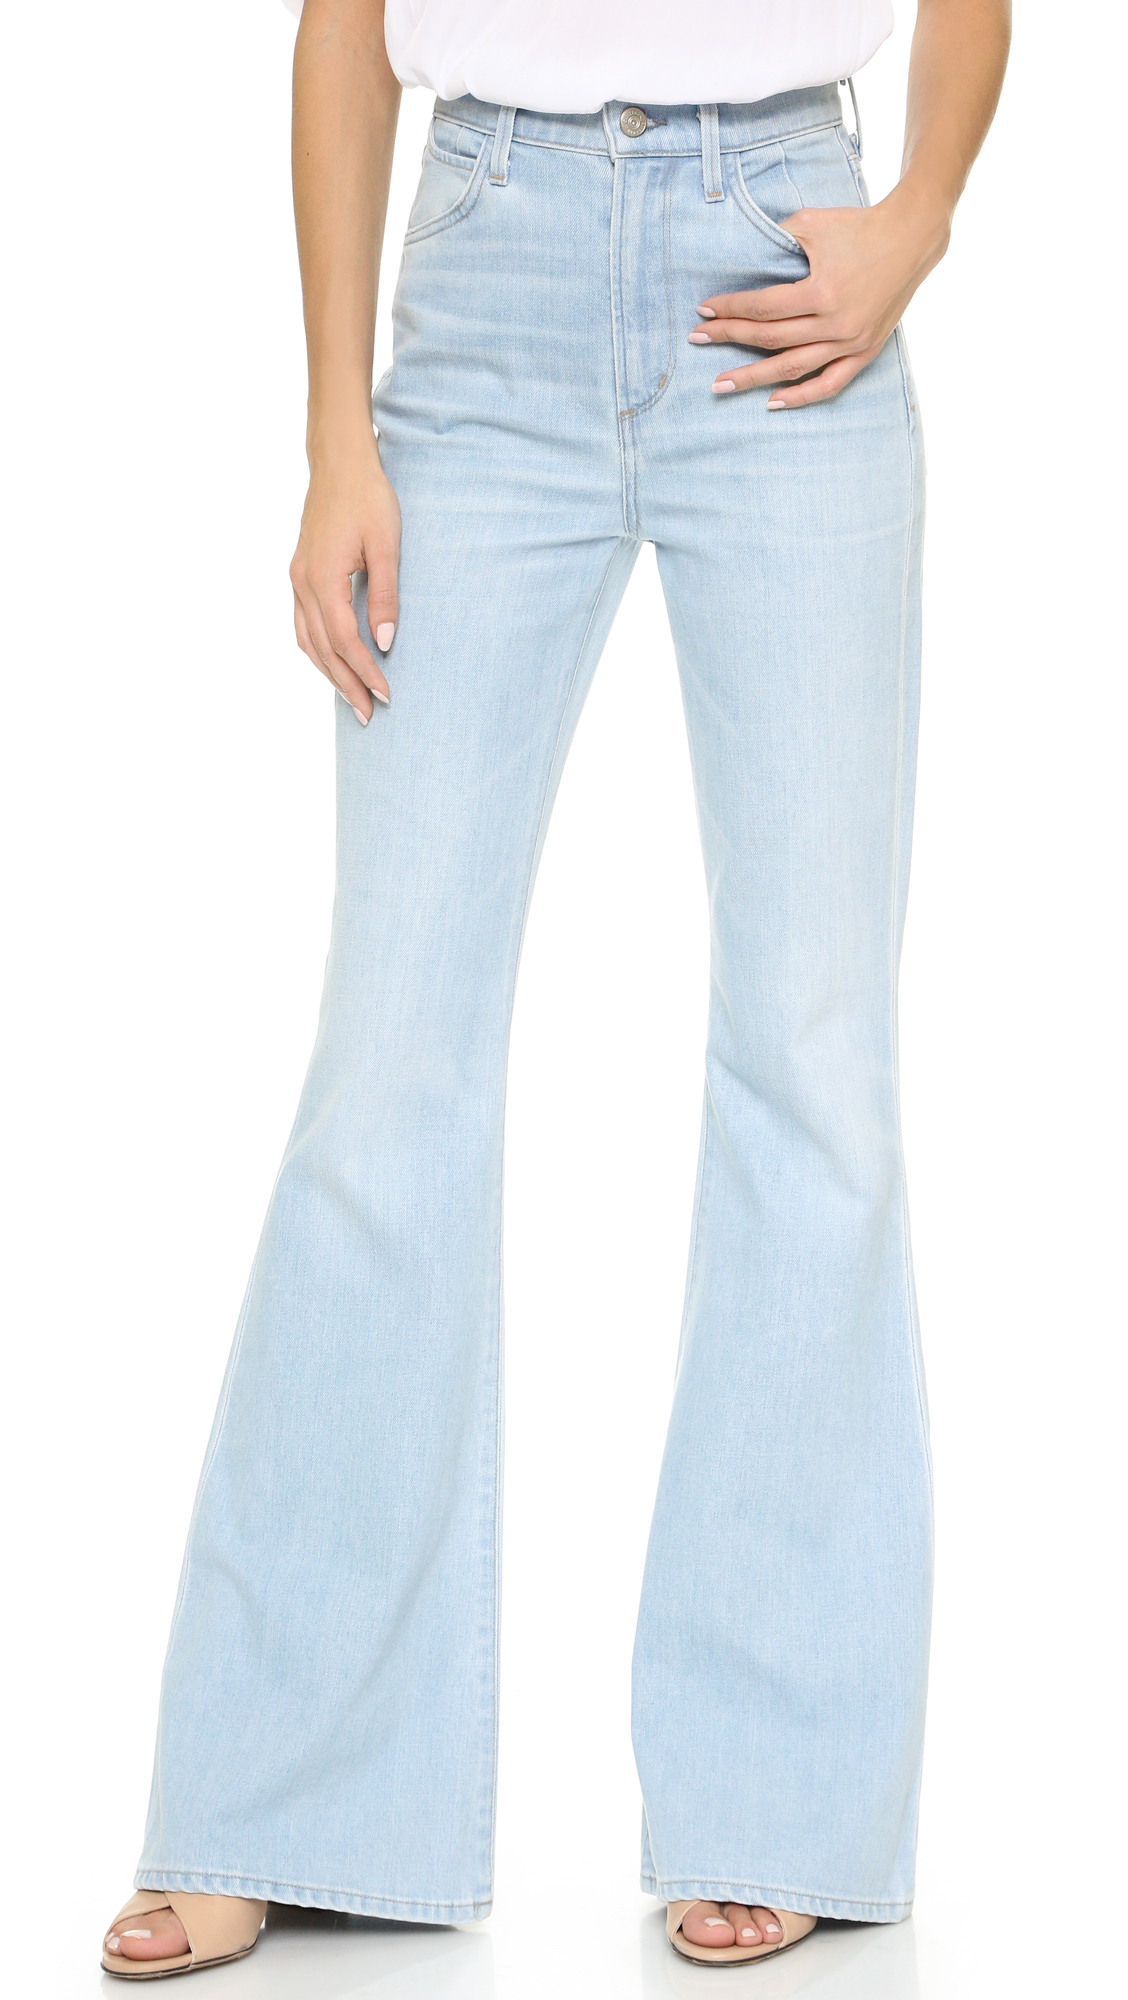 flared high waisted jeans - Blue Citizens Of Humanity 100% Guaranteed Cheap Price Prices Online Clearance Footaction Huge Surprise Cheap Price 2018 Cheap Sale O43jIRJm